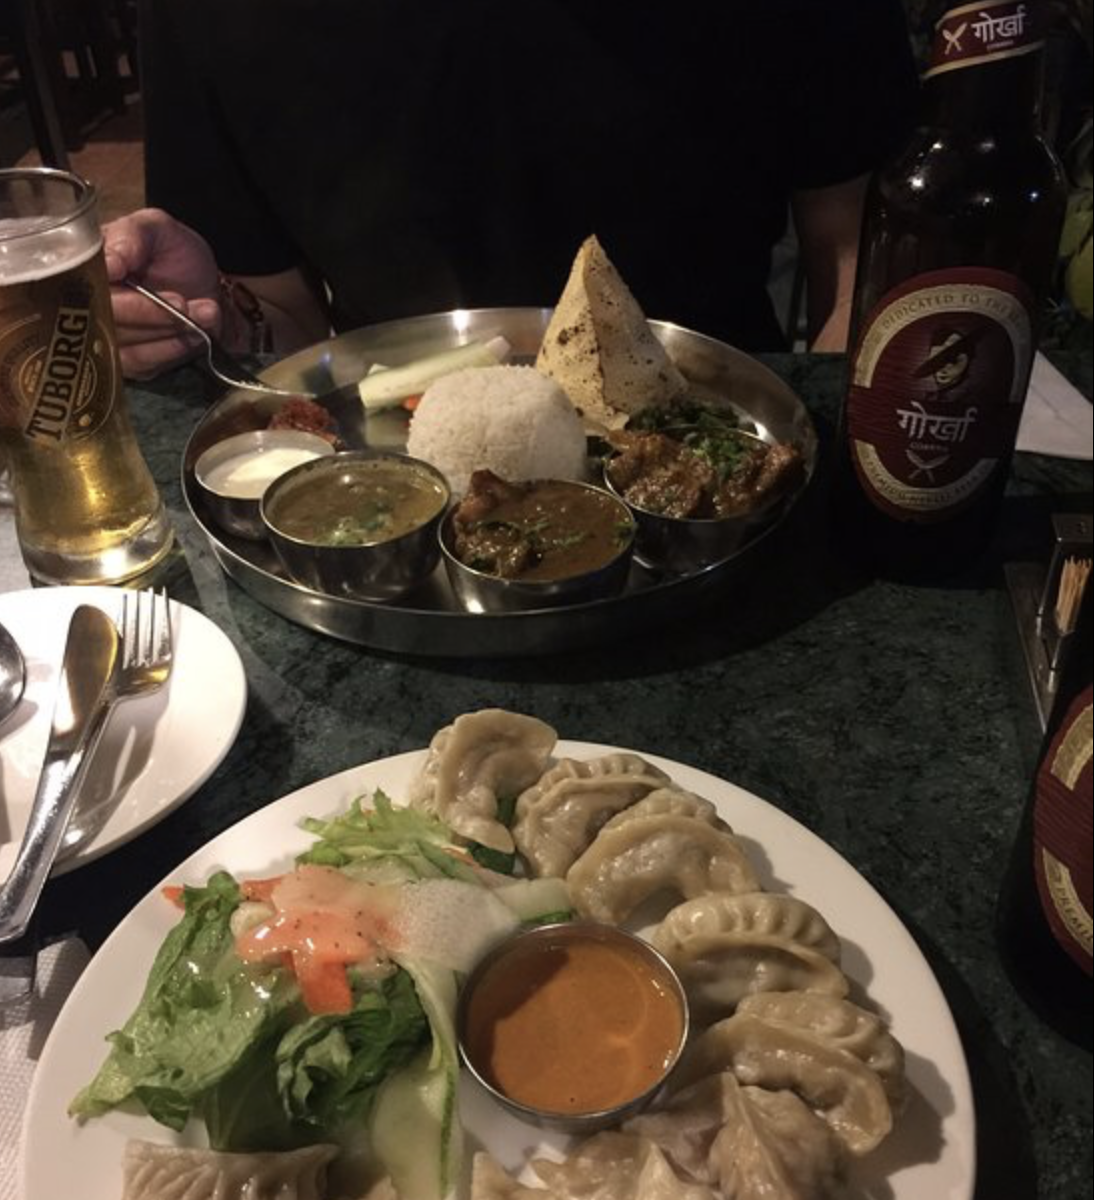 Delicious food at Frens in Kathmandu, Nepal